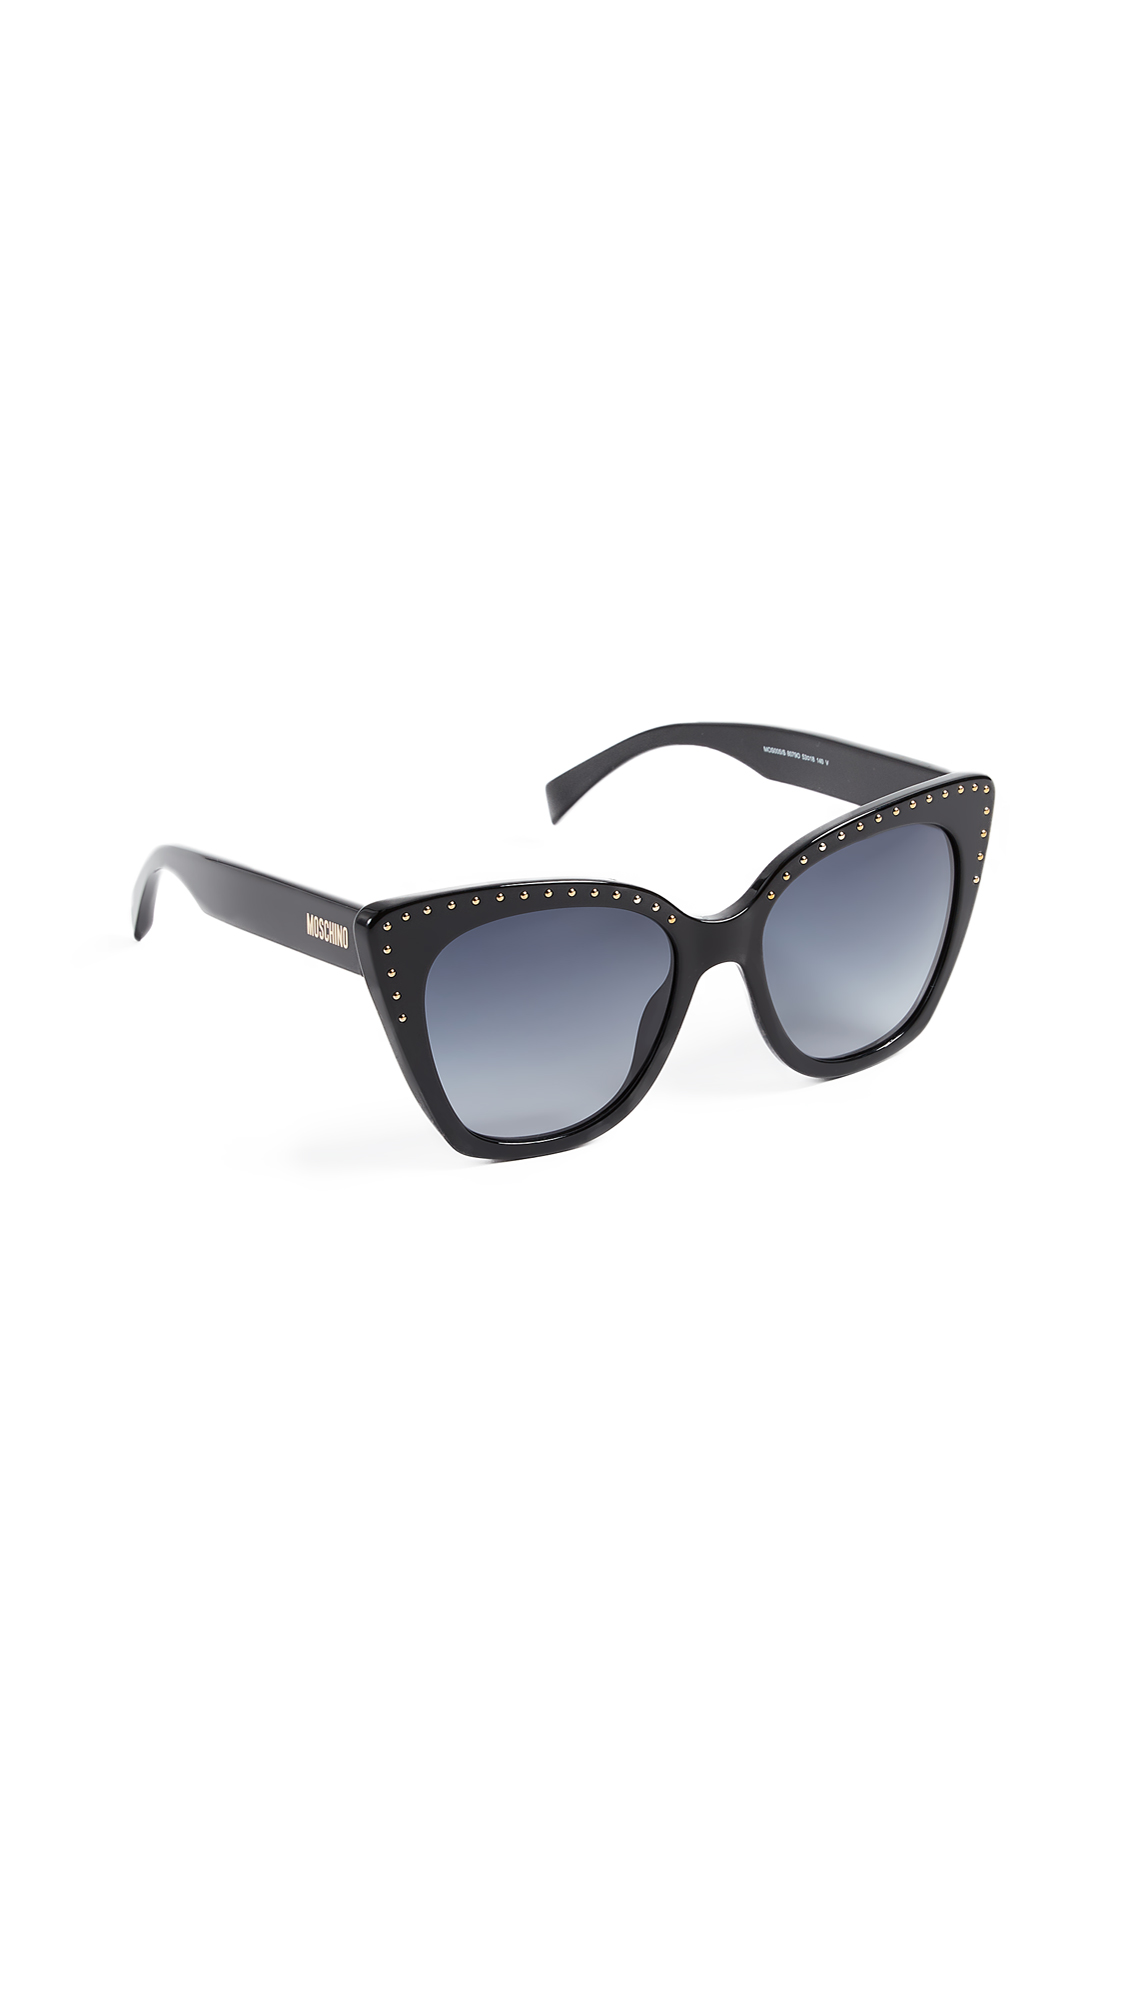 Moschino Slight Cat Eye Sunglasses - Black/Dark Grey